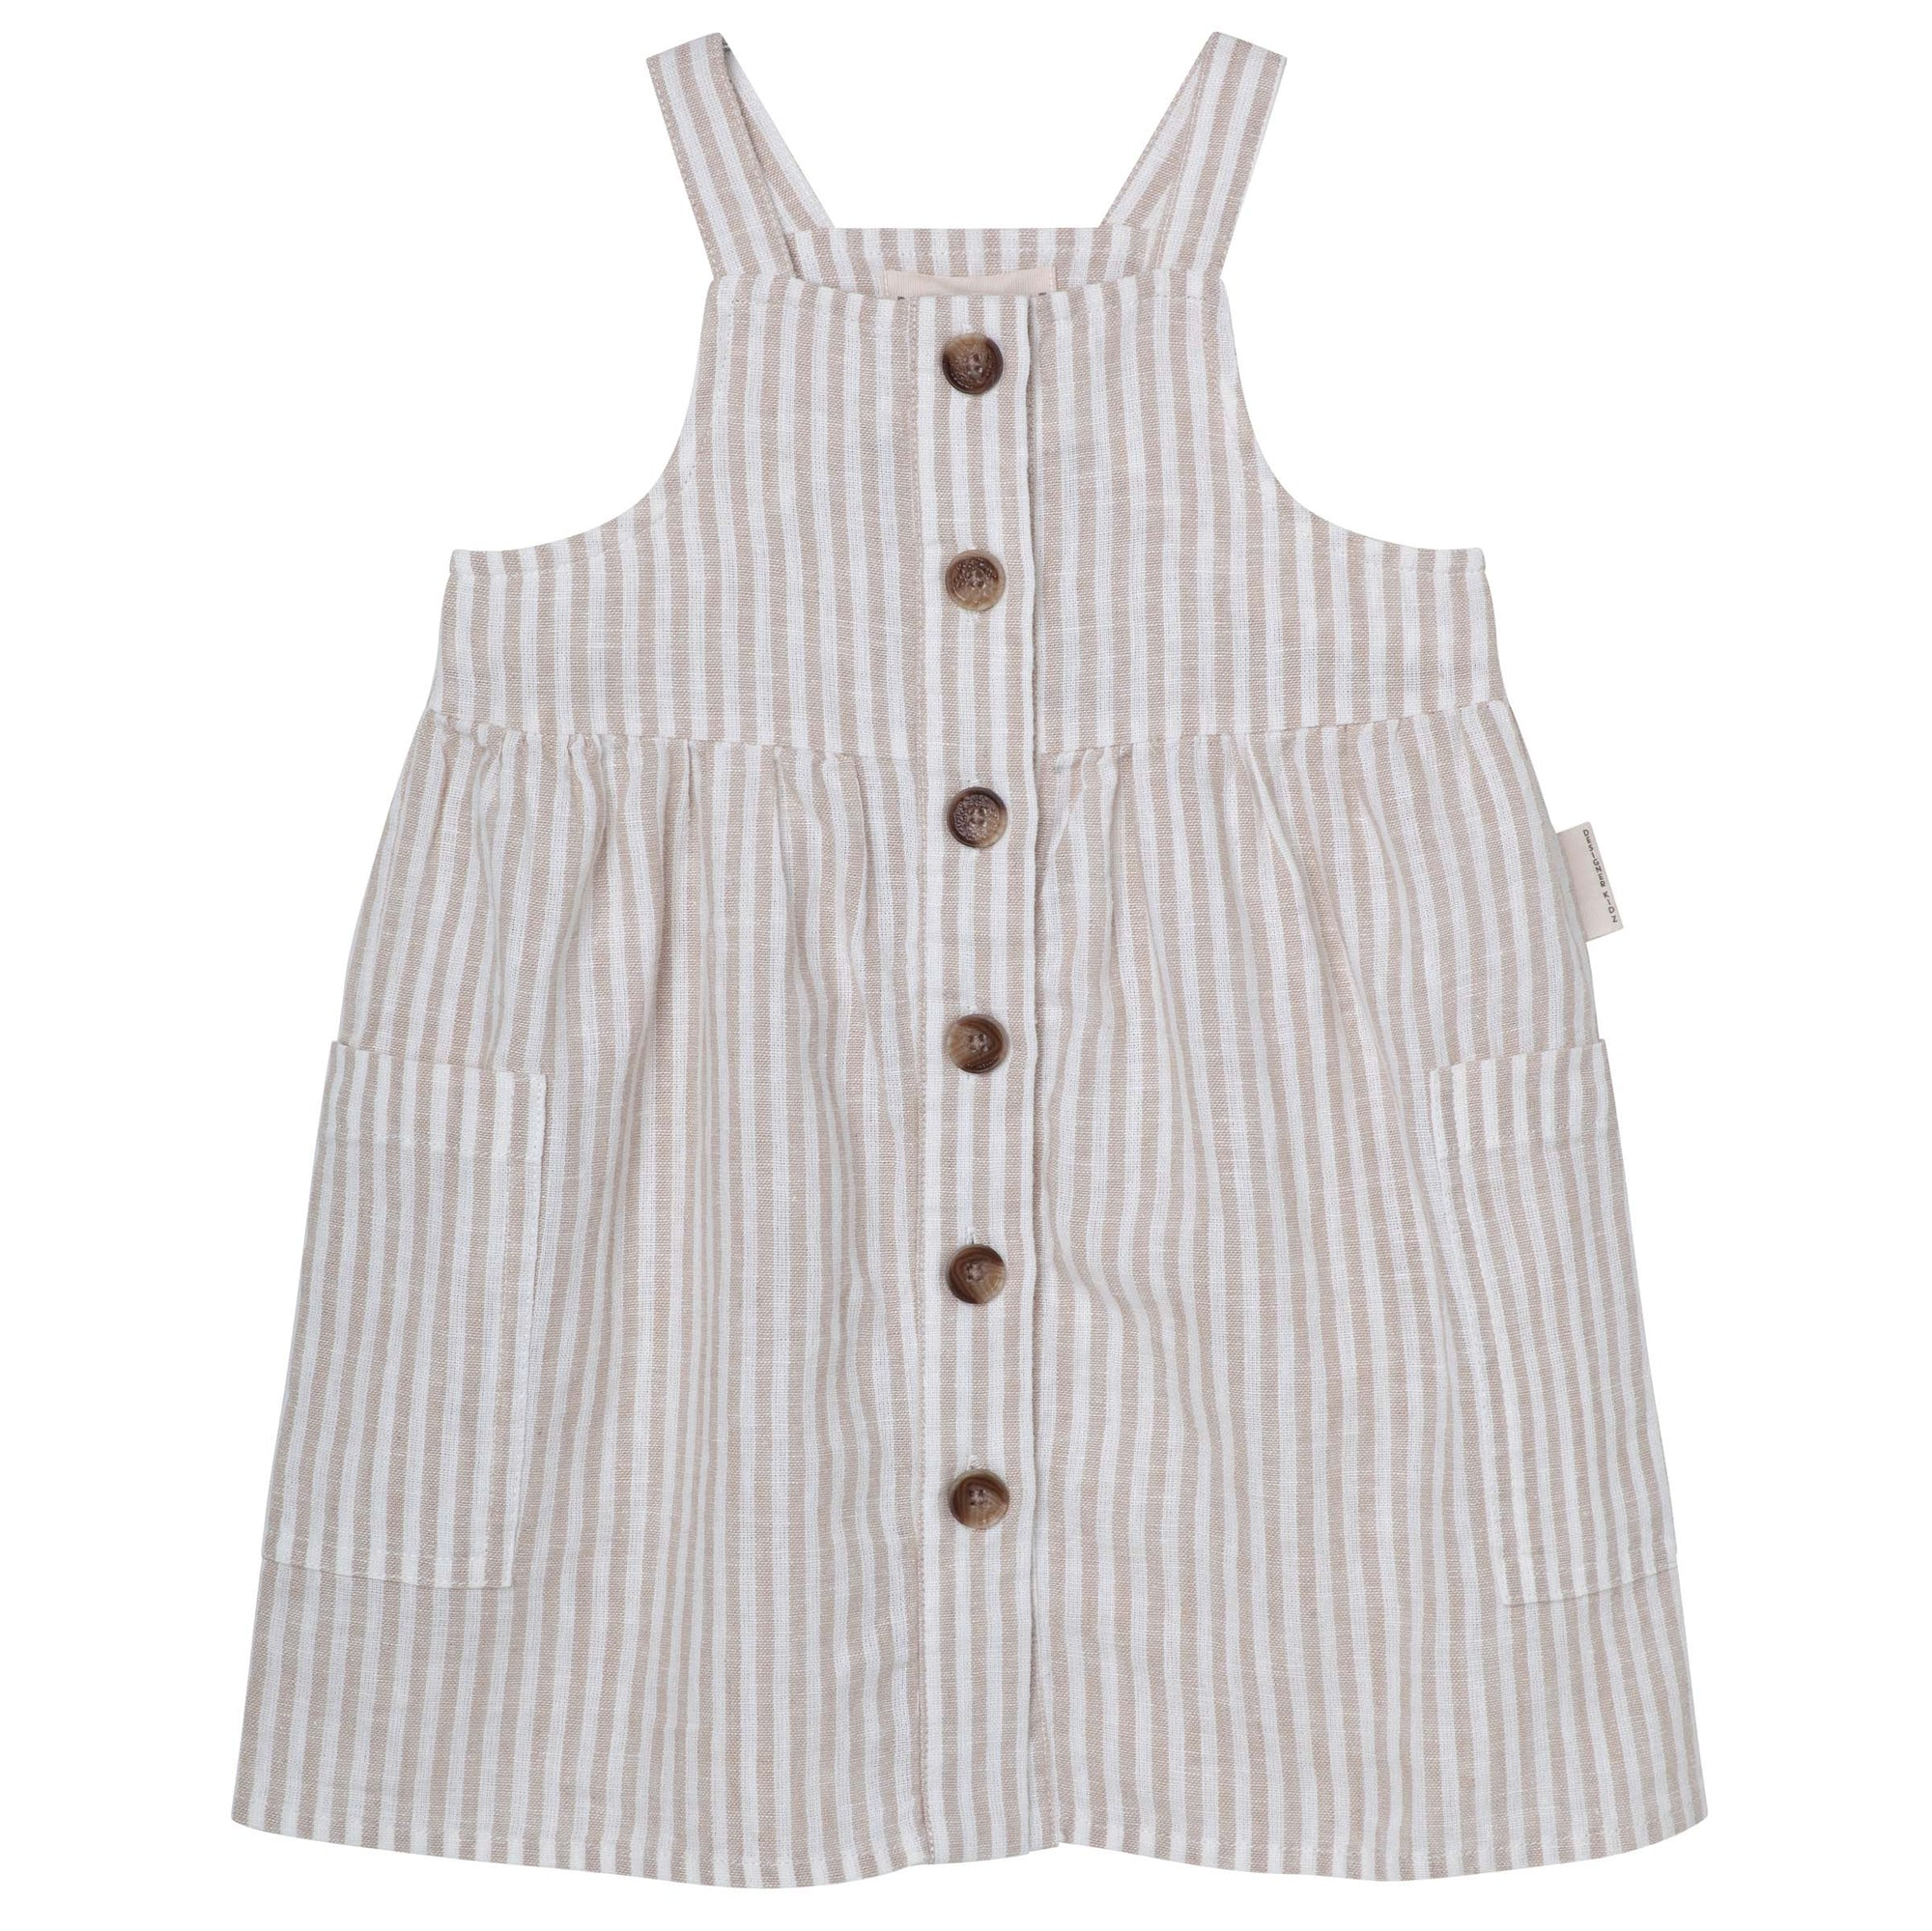 Designer Kidz Button Front Dress - Oatmeal Stripe